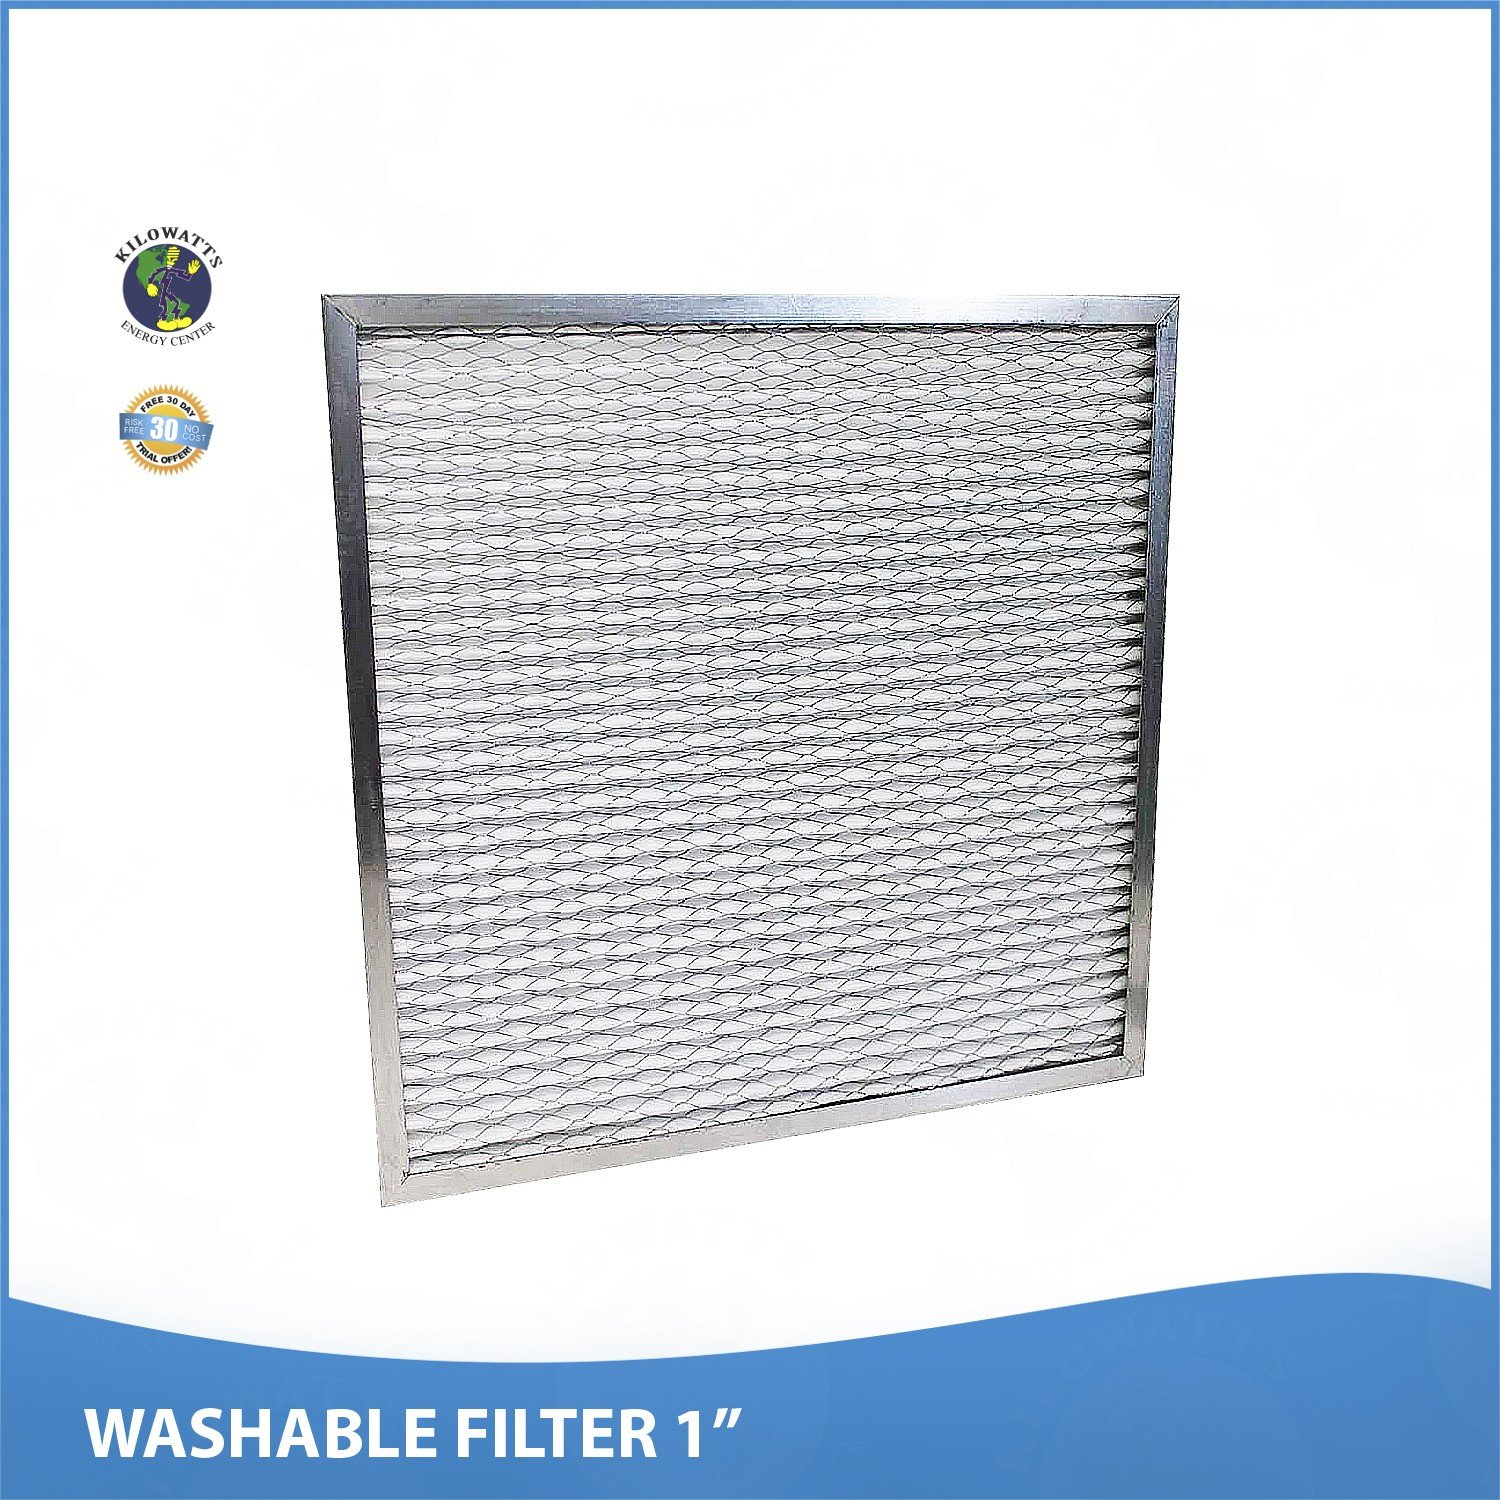 18x20x1 Washable Permanent A/C Furnace Air Filter by Kilowatts Energy Center (Image #1)